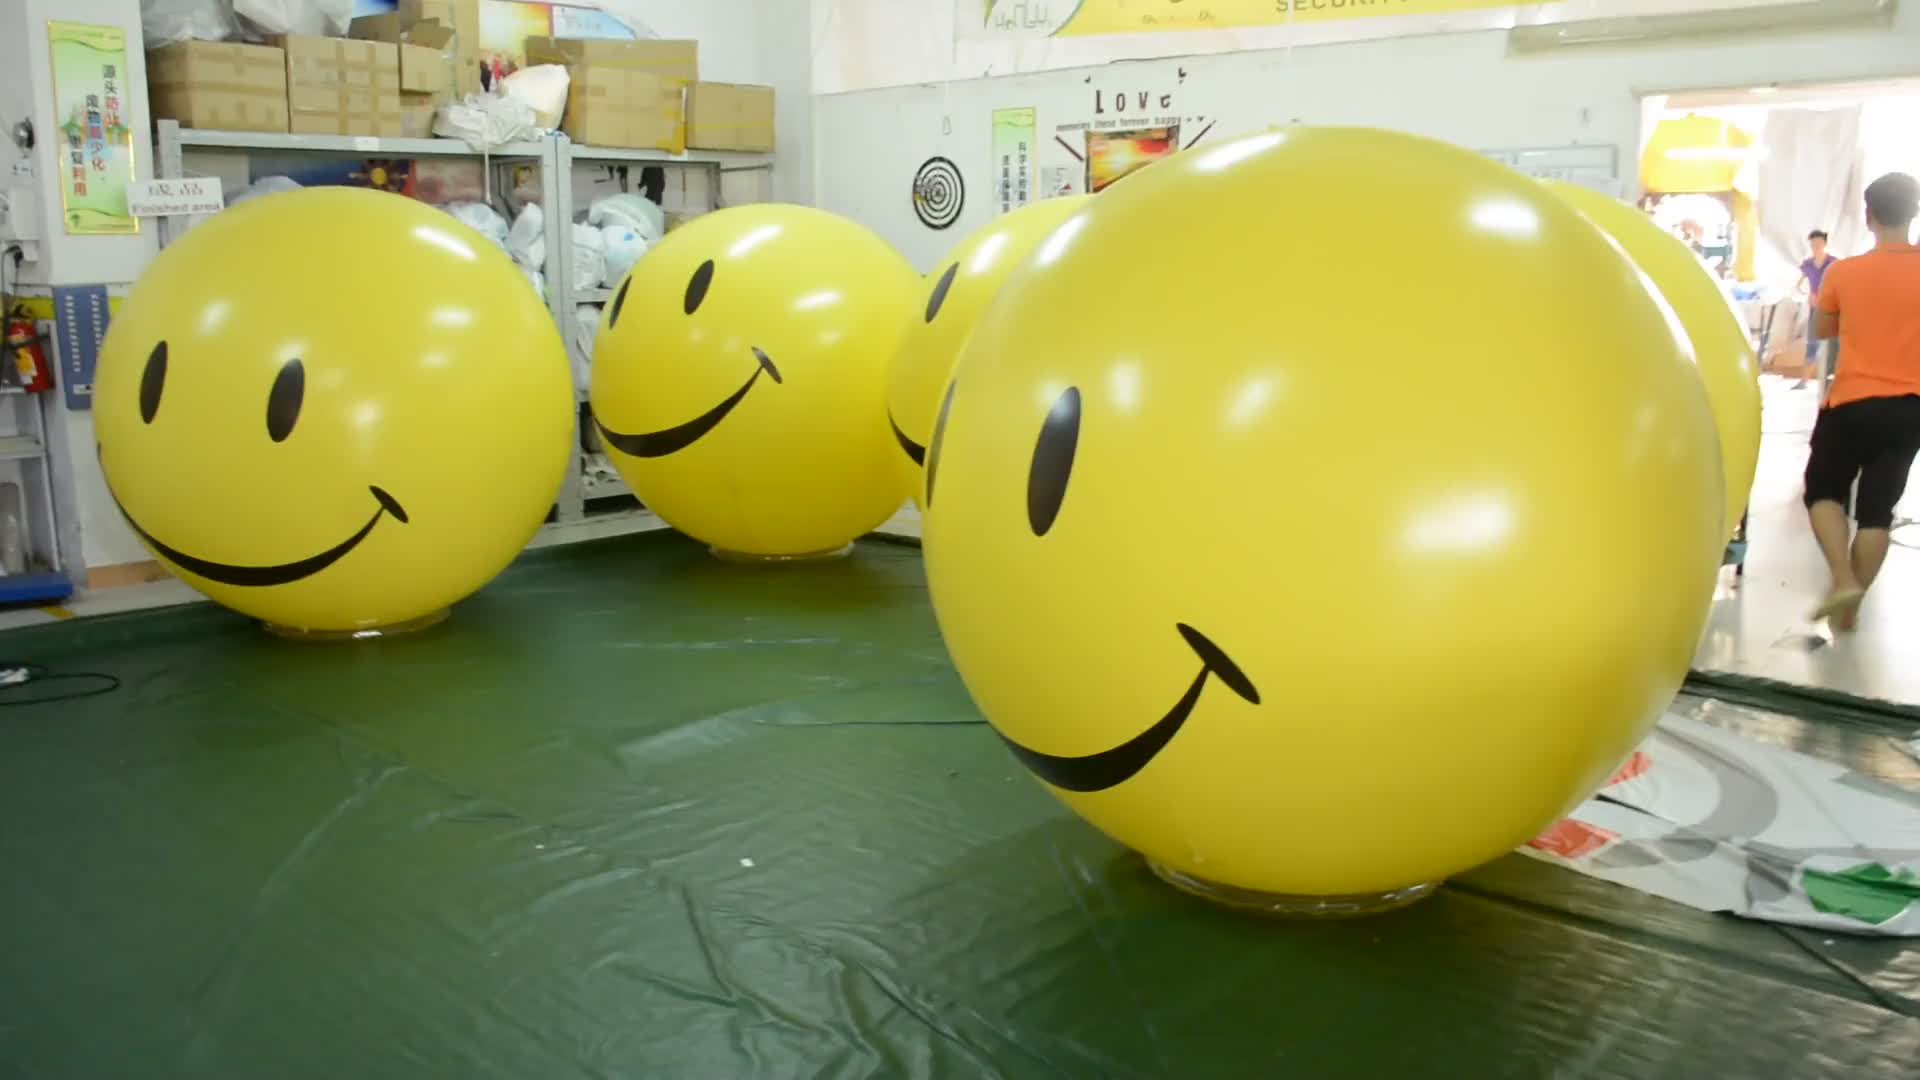 Advertising Yellow Inflatable Smile Face Helium Balloon For Sale